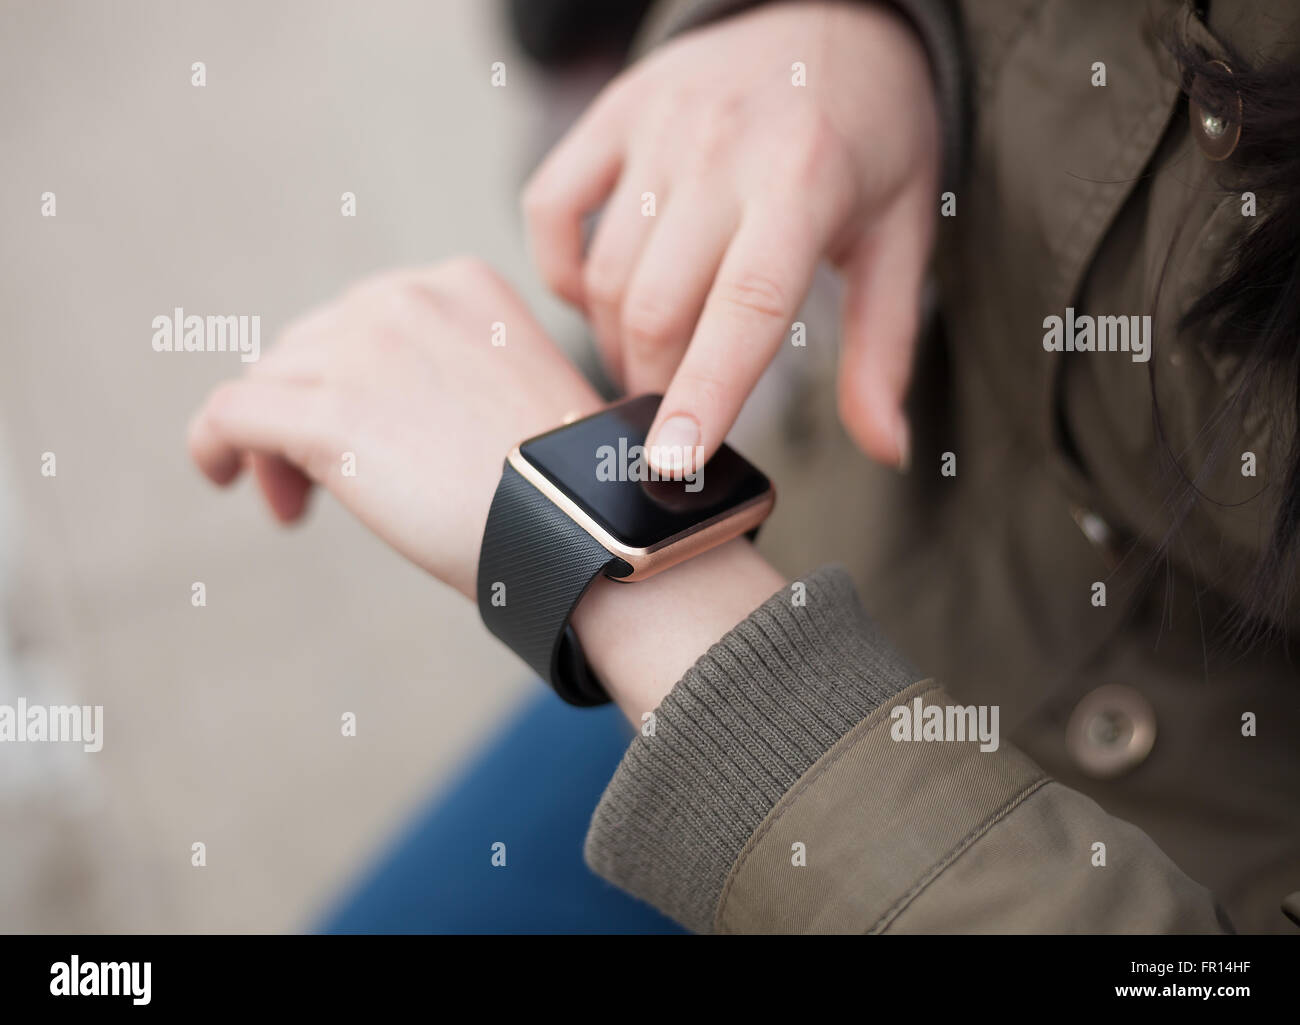 Female touching on her trendy smart wrist watch. This person is always connected to social media and internet. - Stock Image